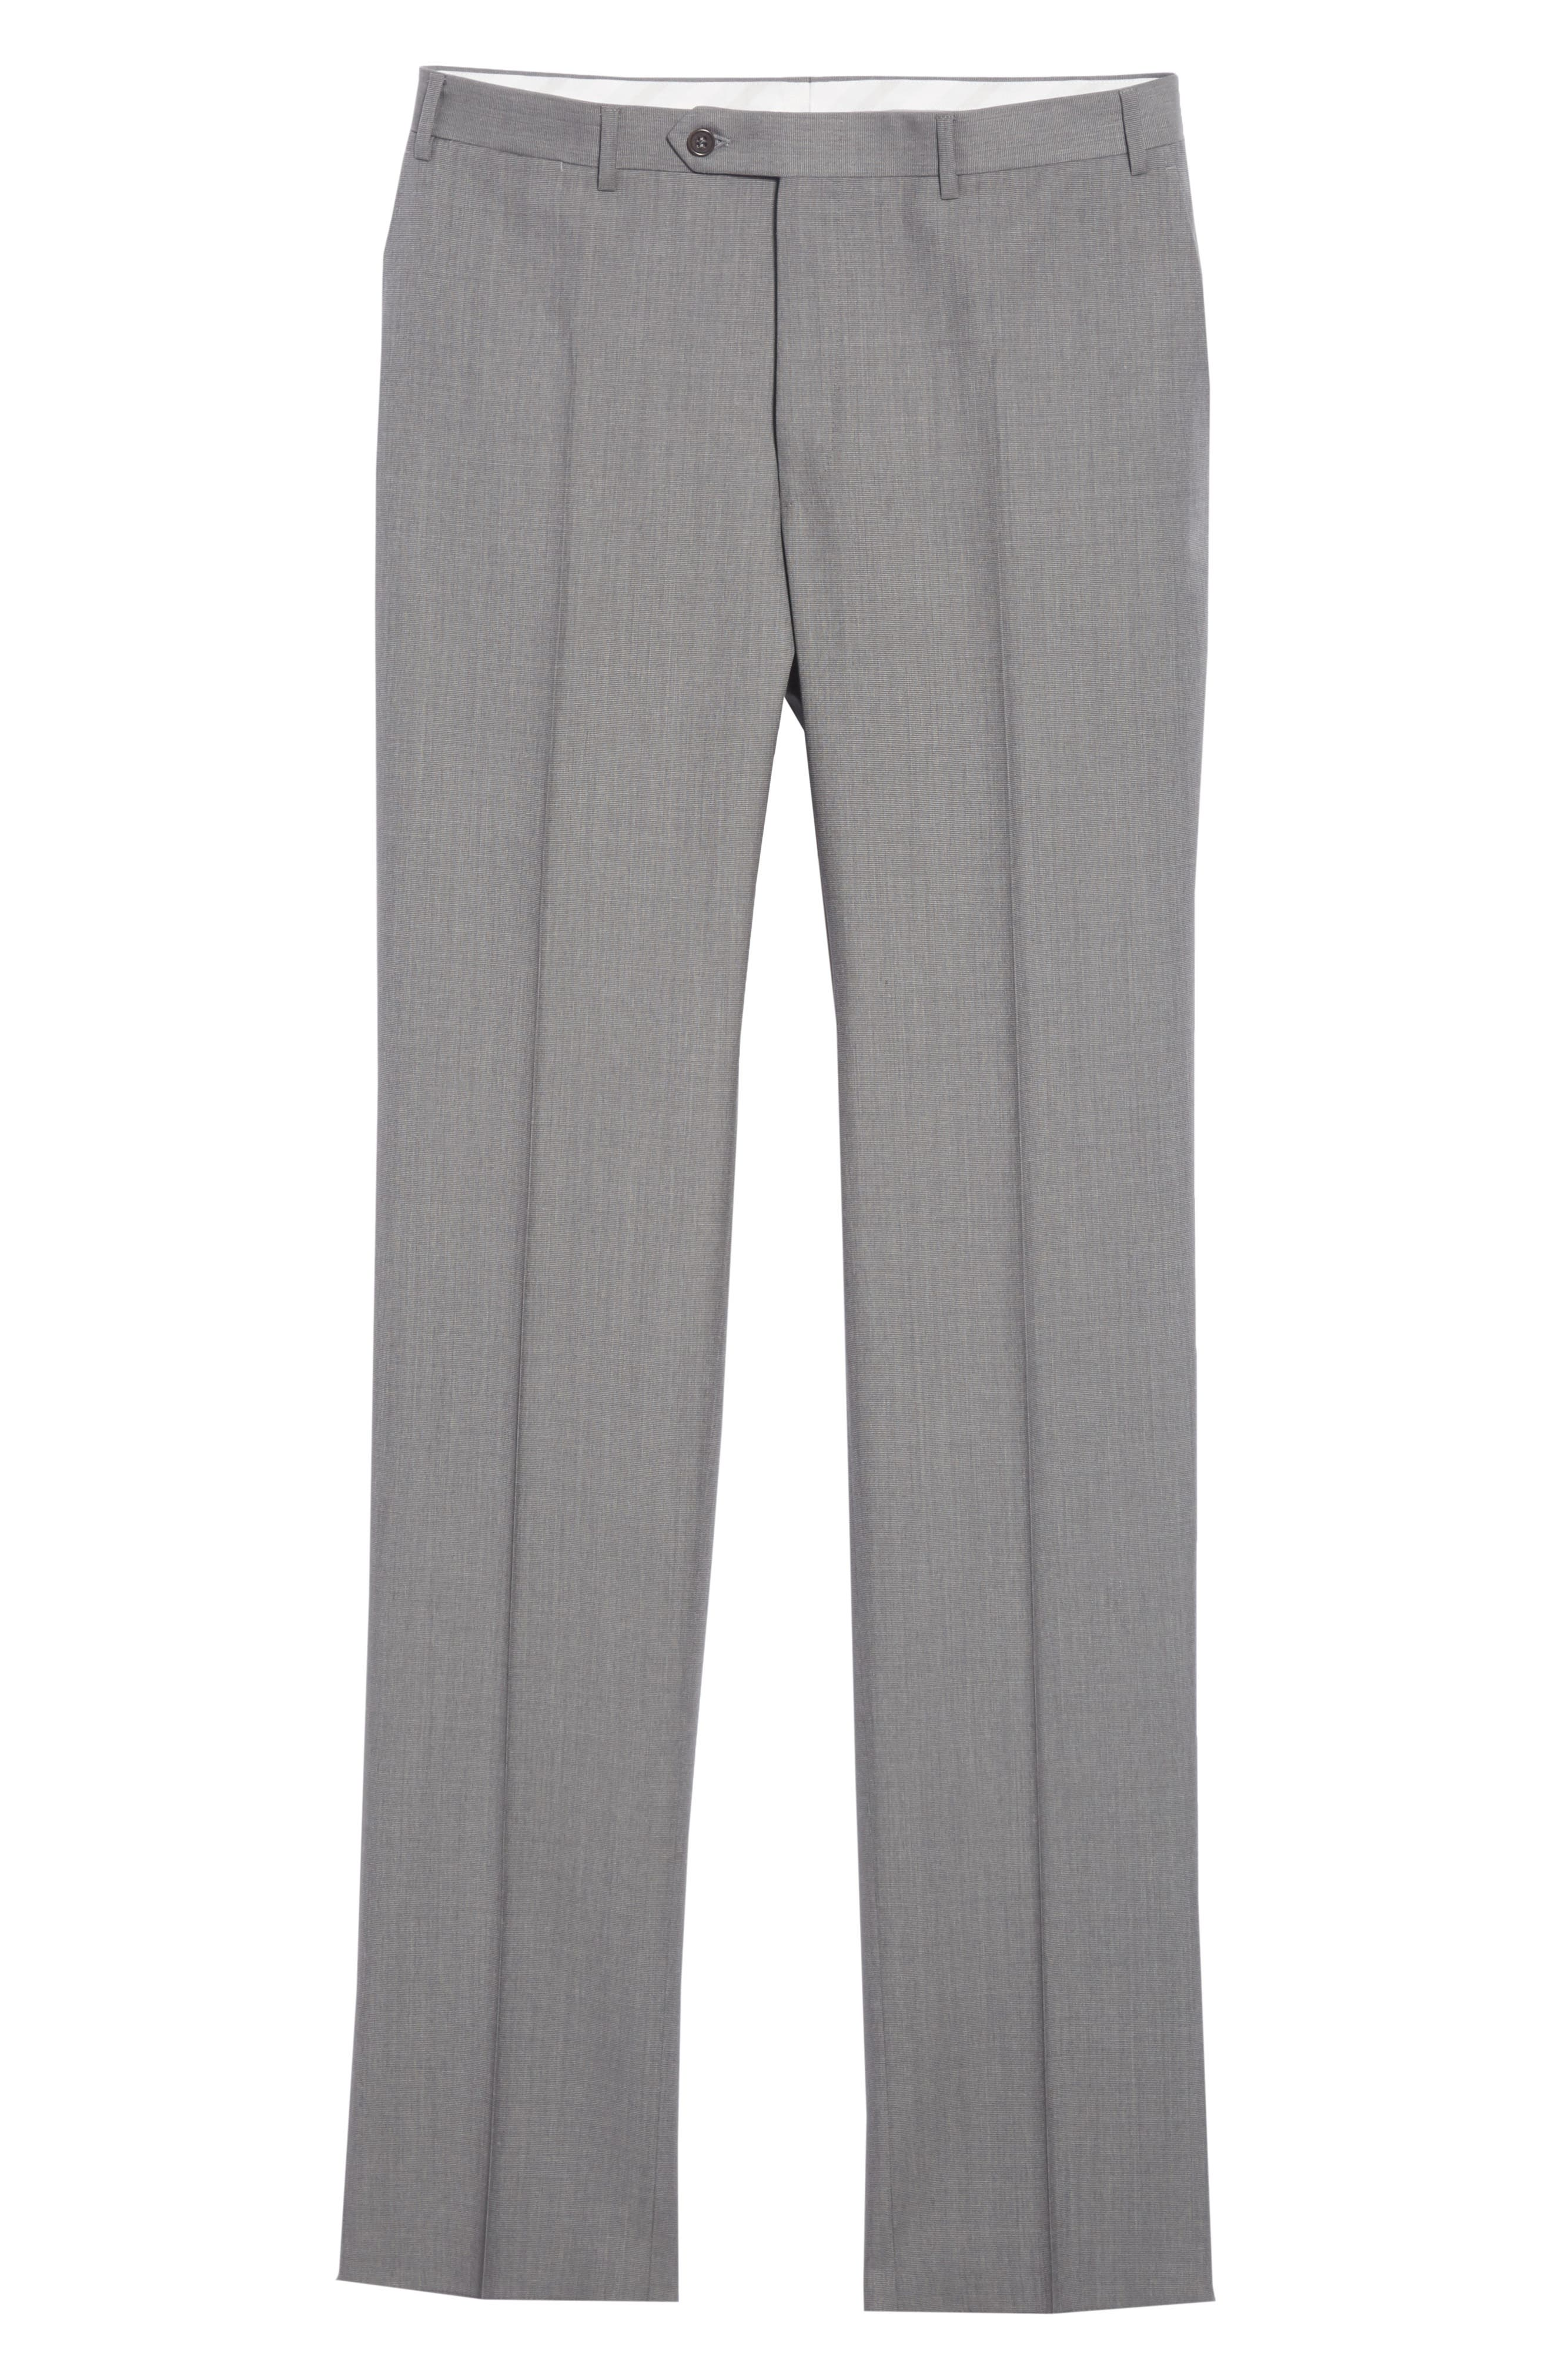 Micro Dot Regular Fit Flat Front Wool Trousers,                             Alternate thumbnail 6, color,                             020